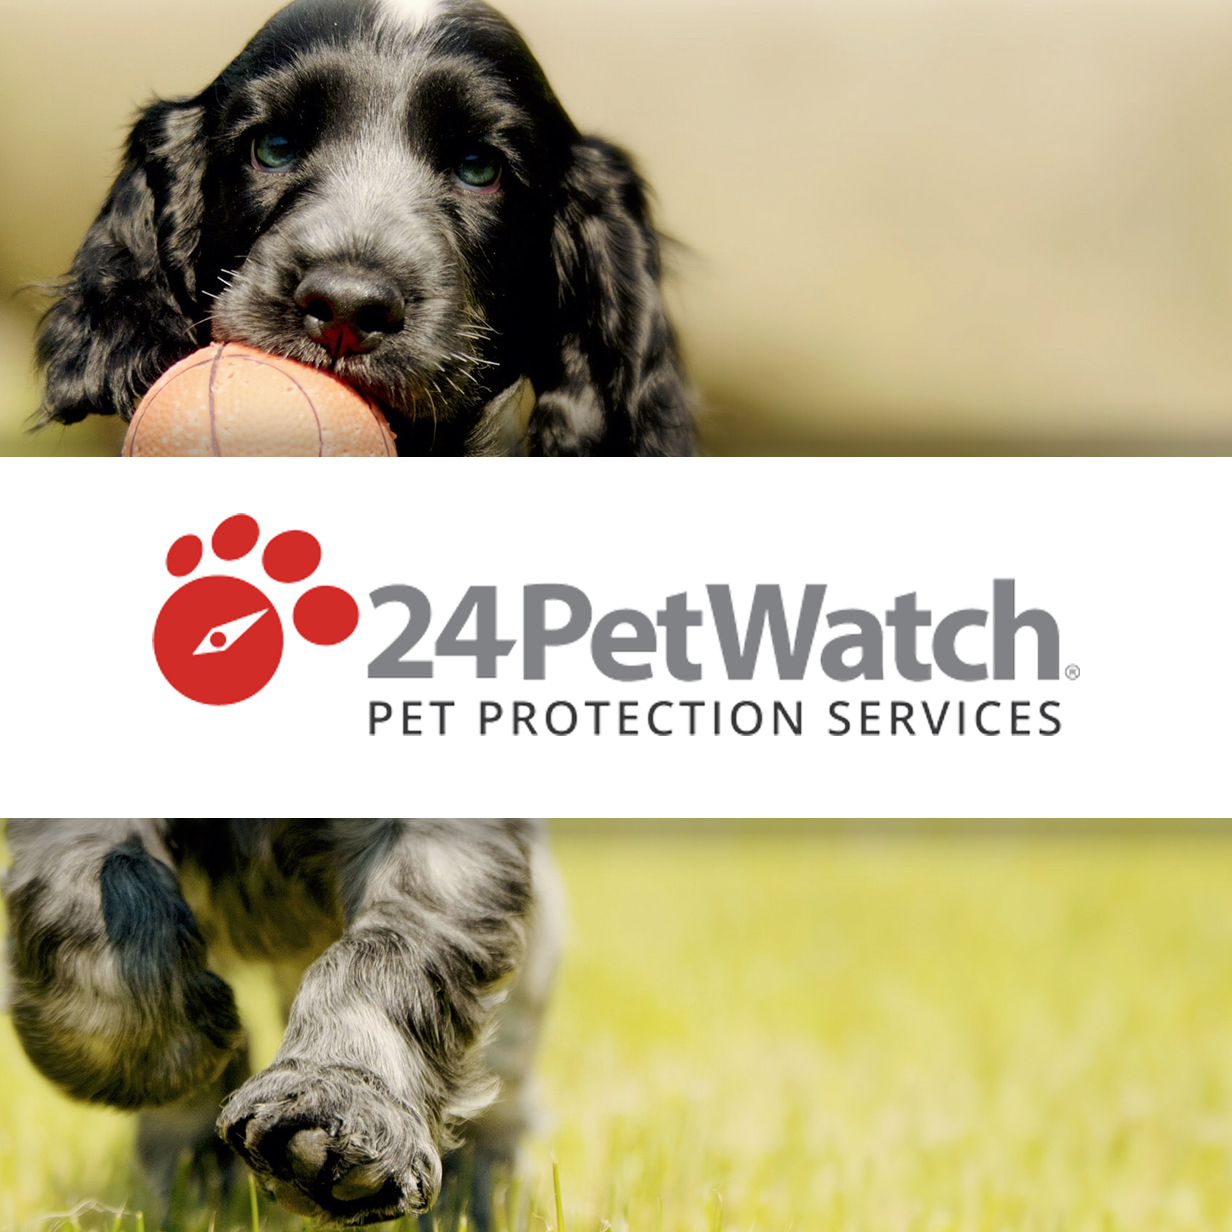 24PetWatch - Pet Protection Plan Membership Redesign